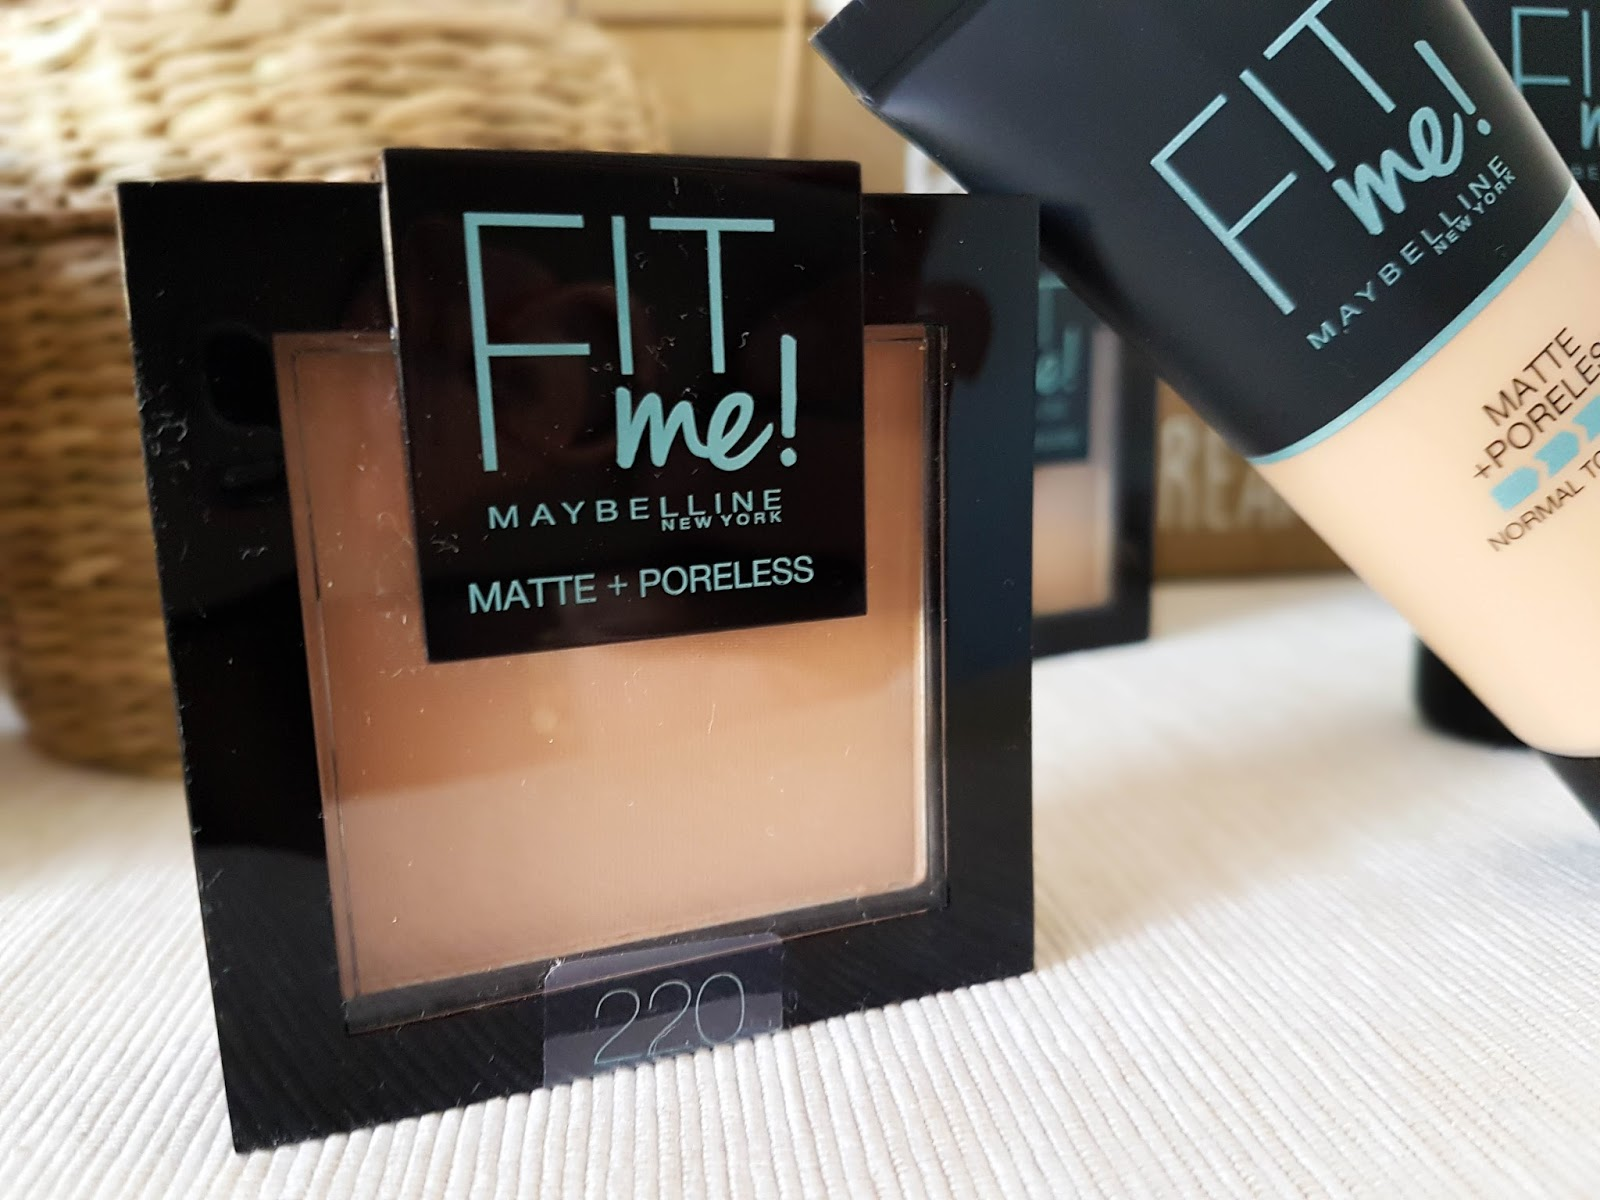 poudre_fit_me_matte_and_poreless_maybelline_swatch_mama_syca_beaute